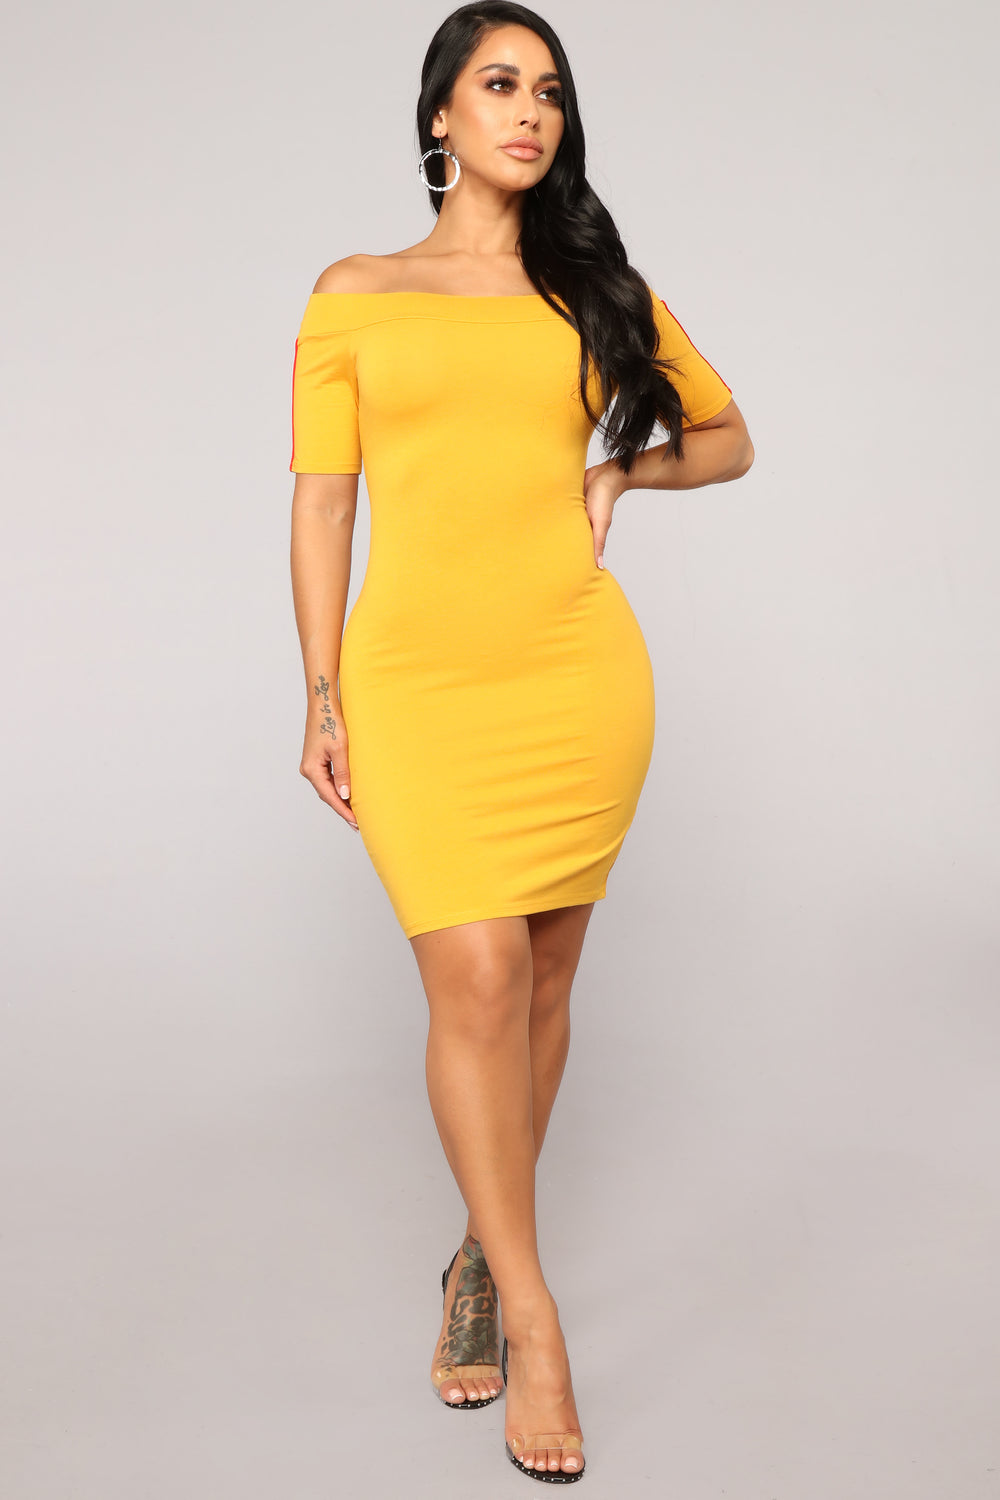 In Play Athletic Dress - Mustard